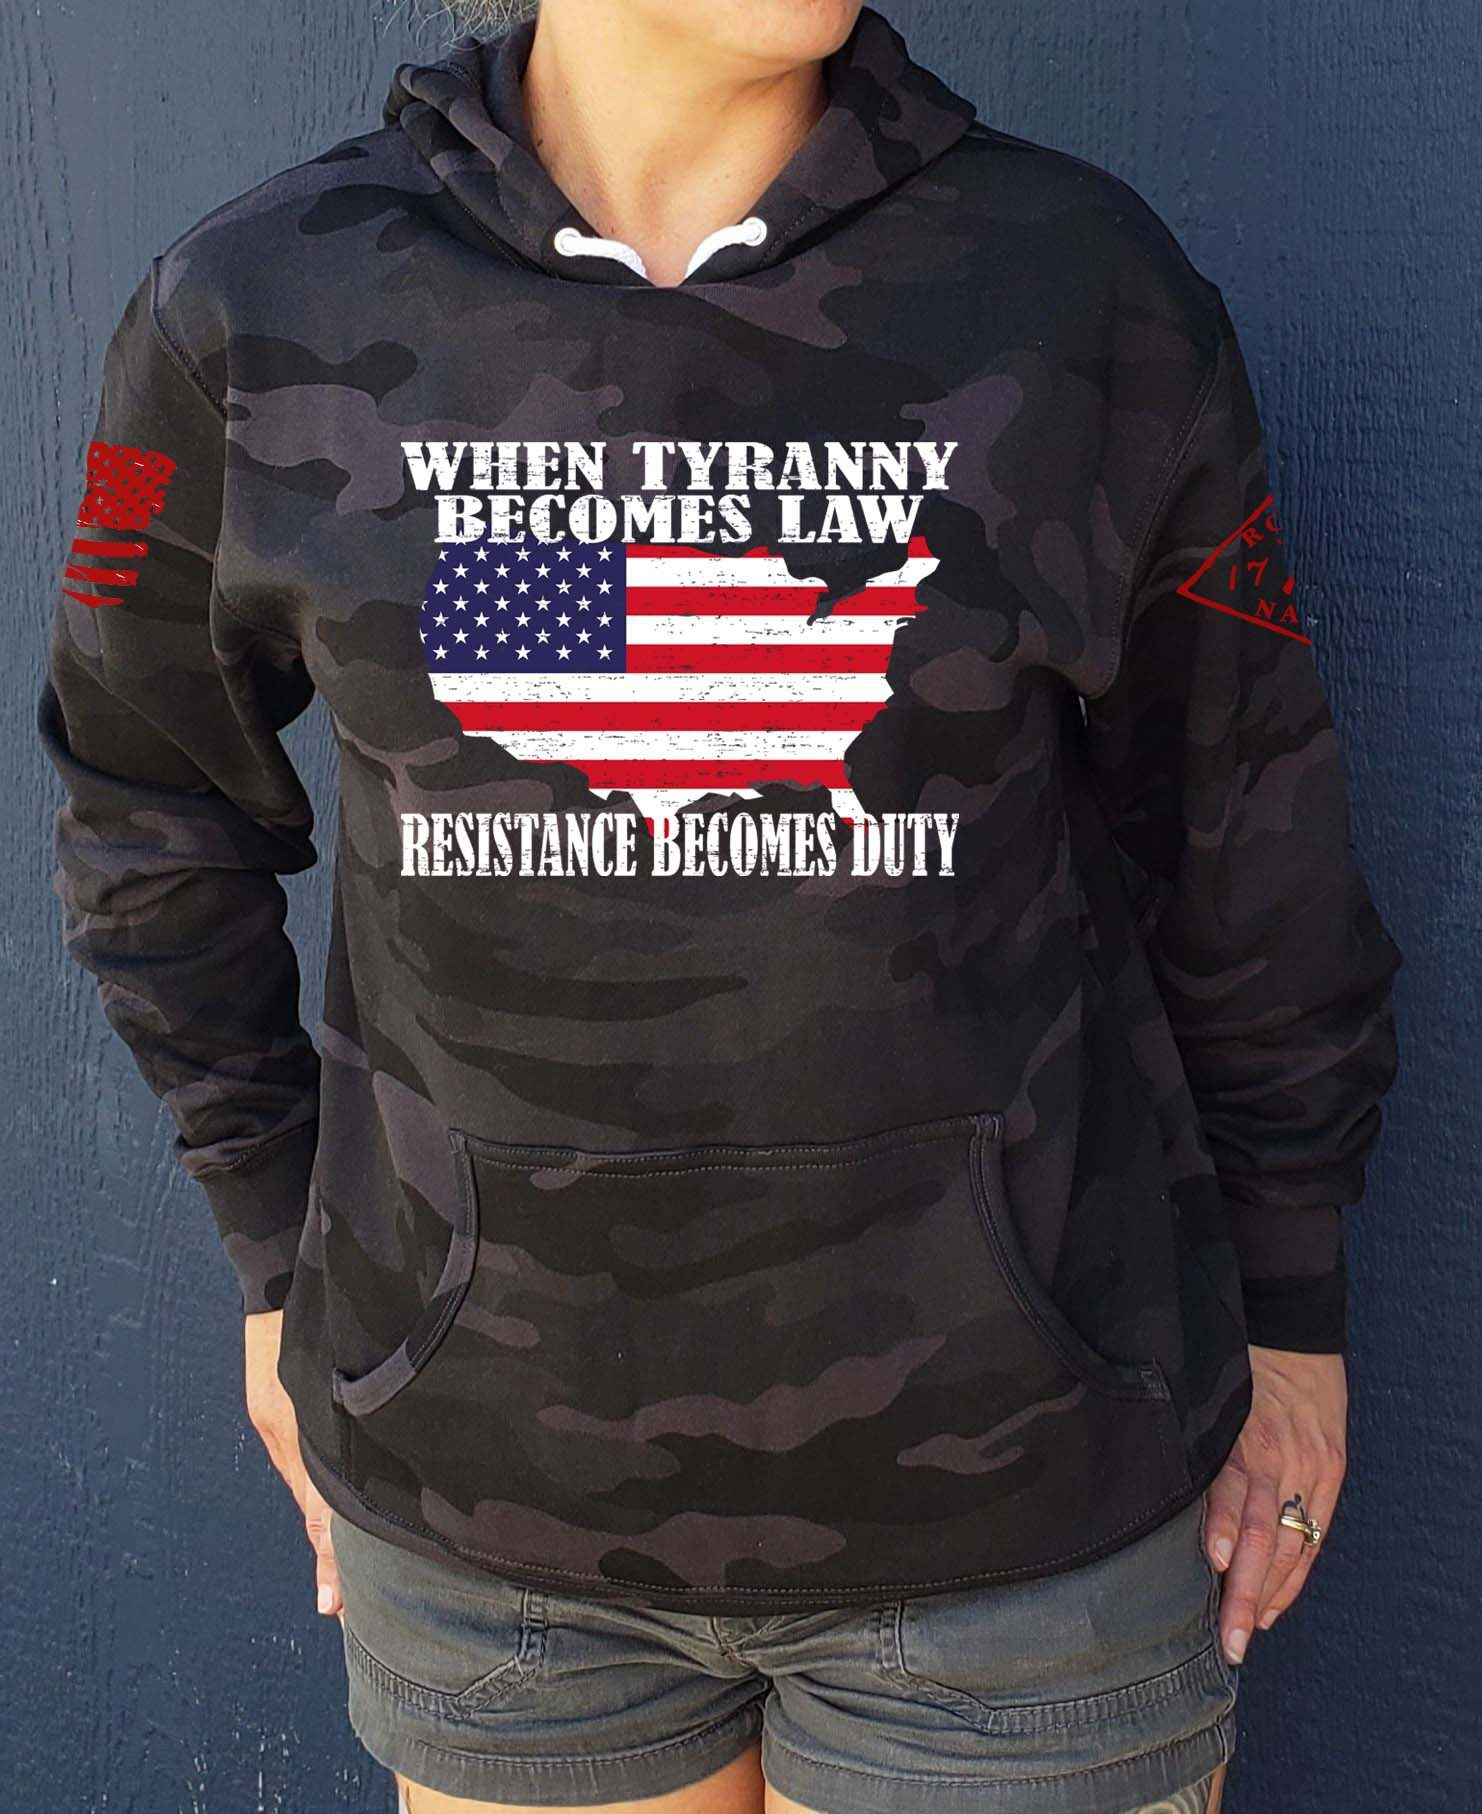 When Tyranny Becomes Law Resistance Becomes Duty on a Black Camo Hoodie